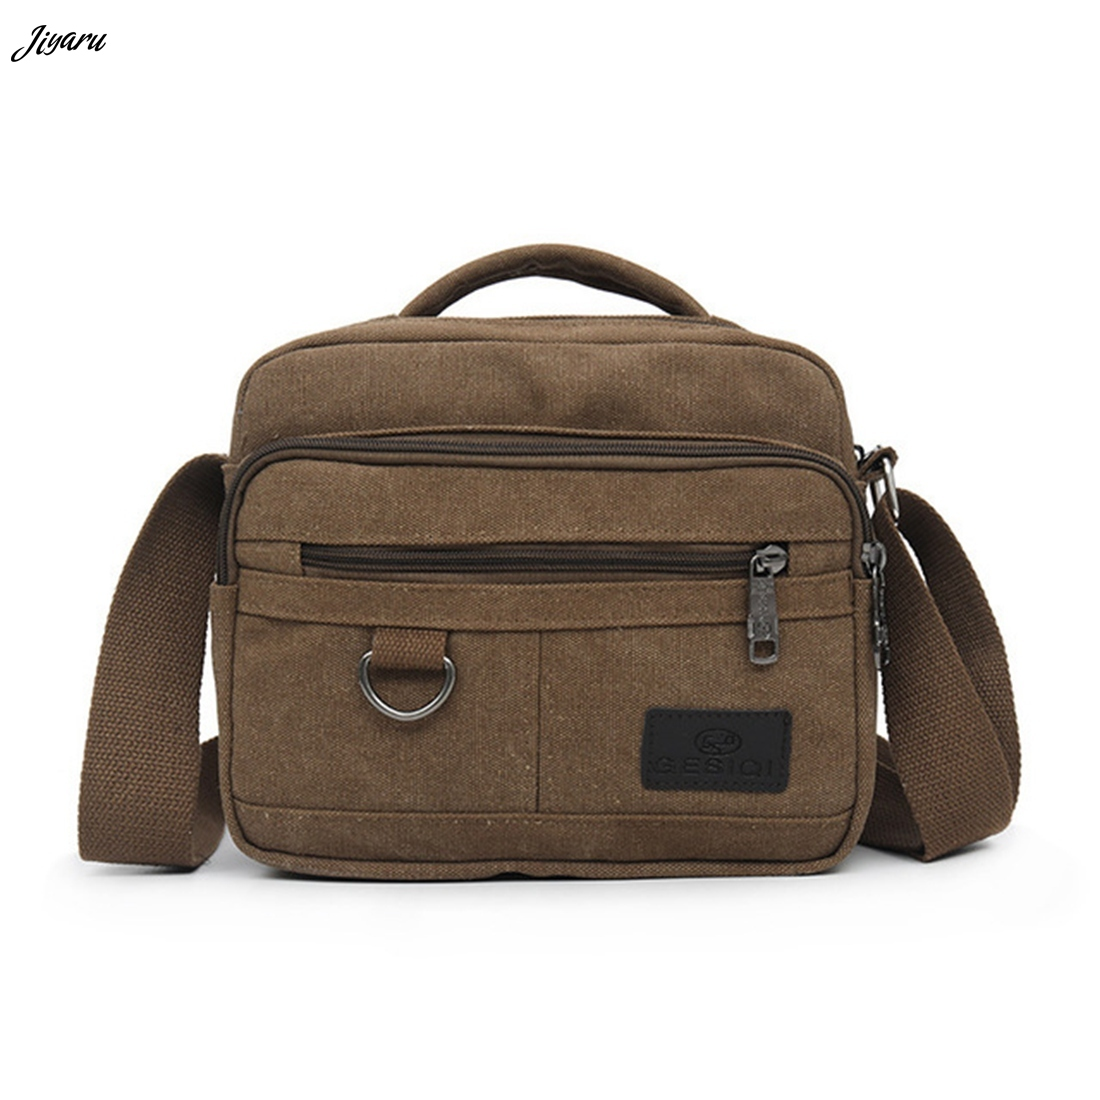 Men Handbags Canvas-Bag Messenger-Bags Multifunction Solid-Zipper Casual Hot-Selling